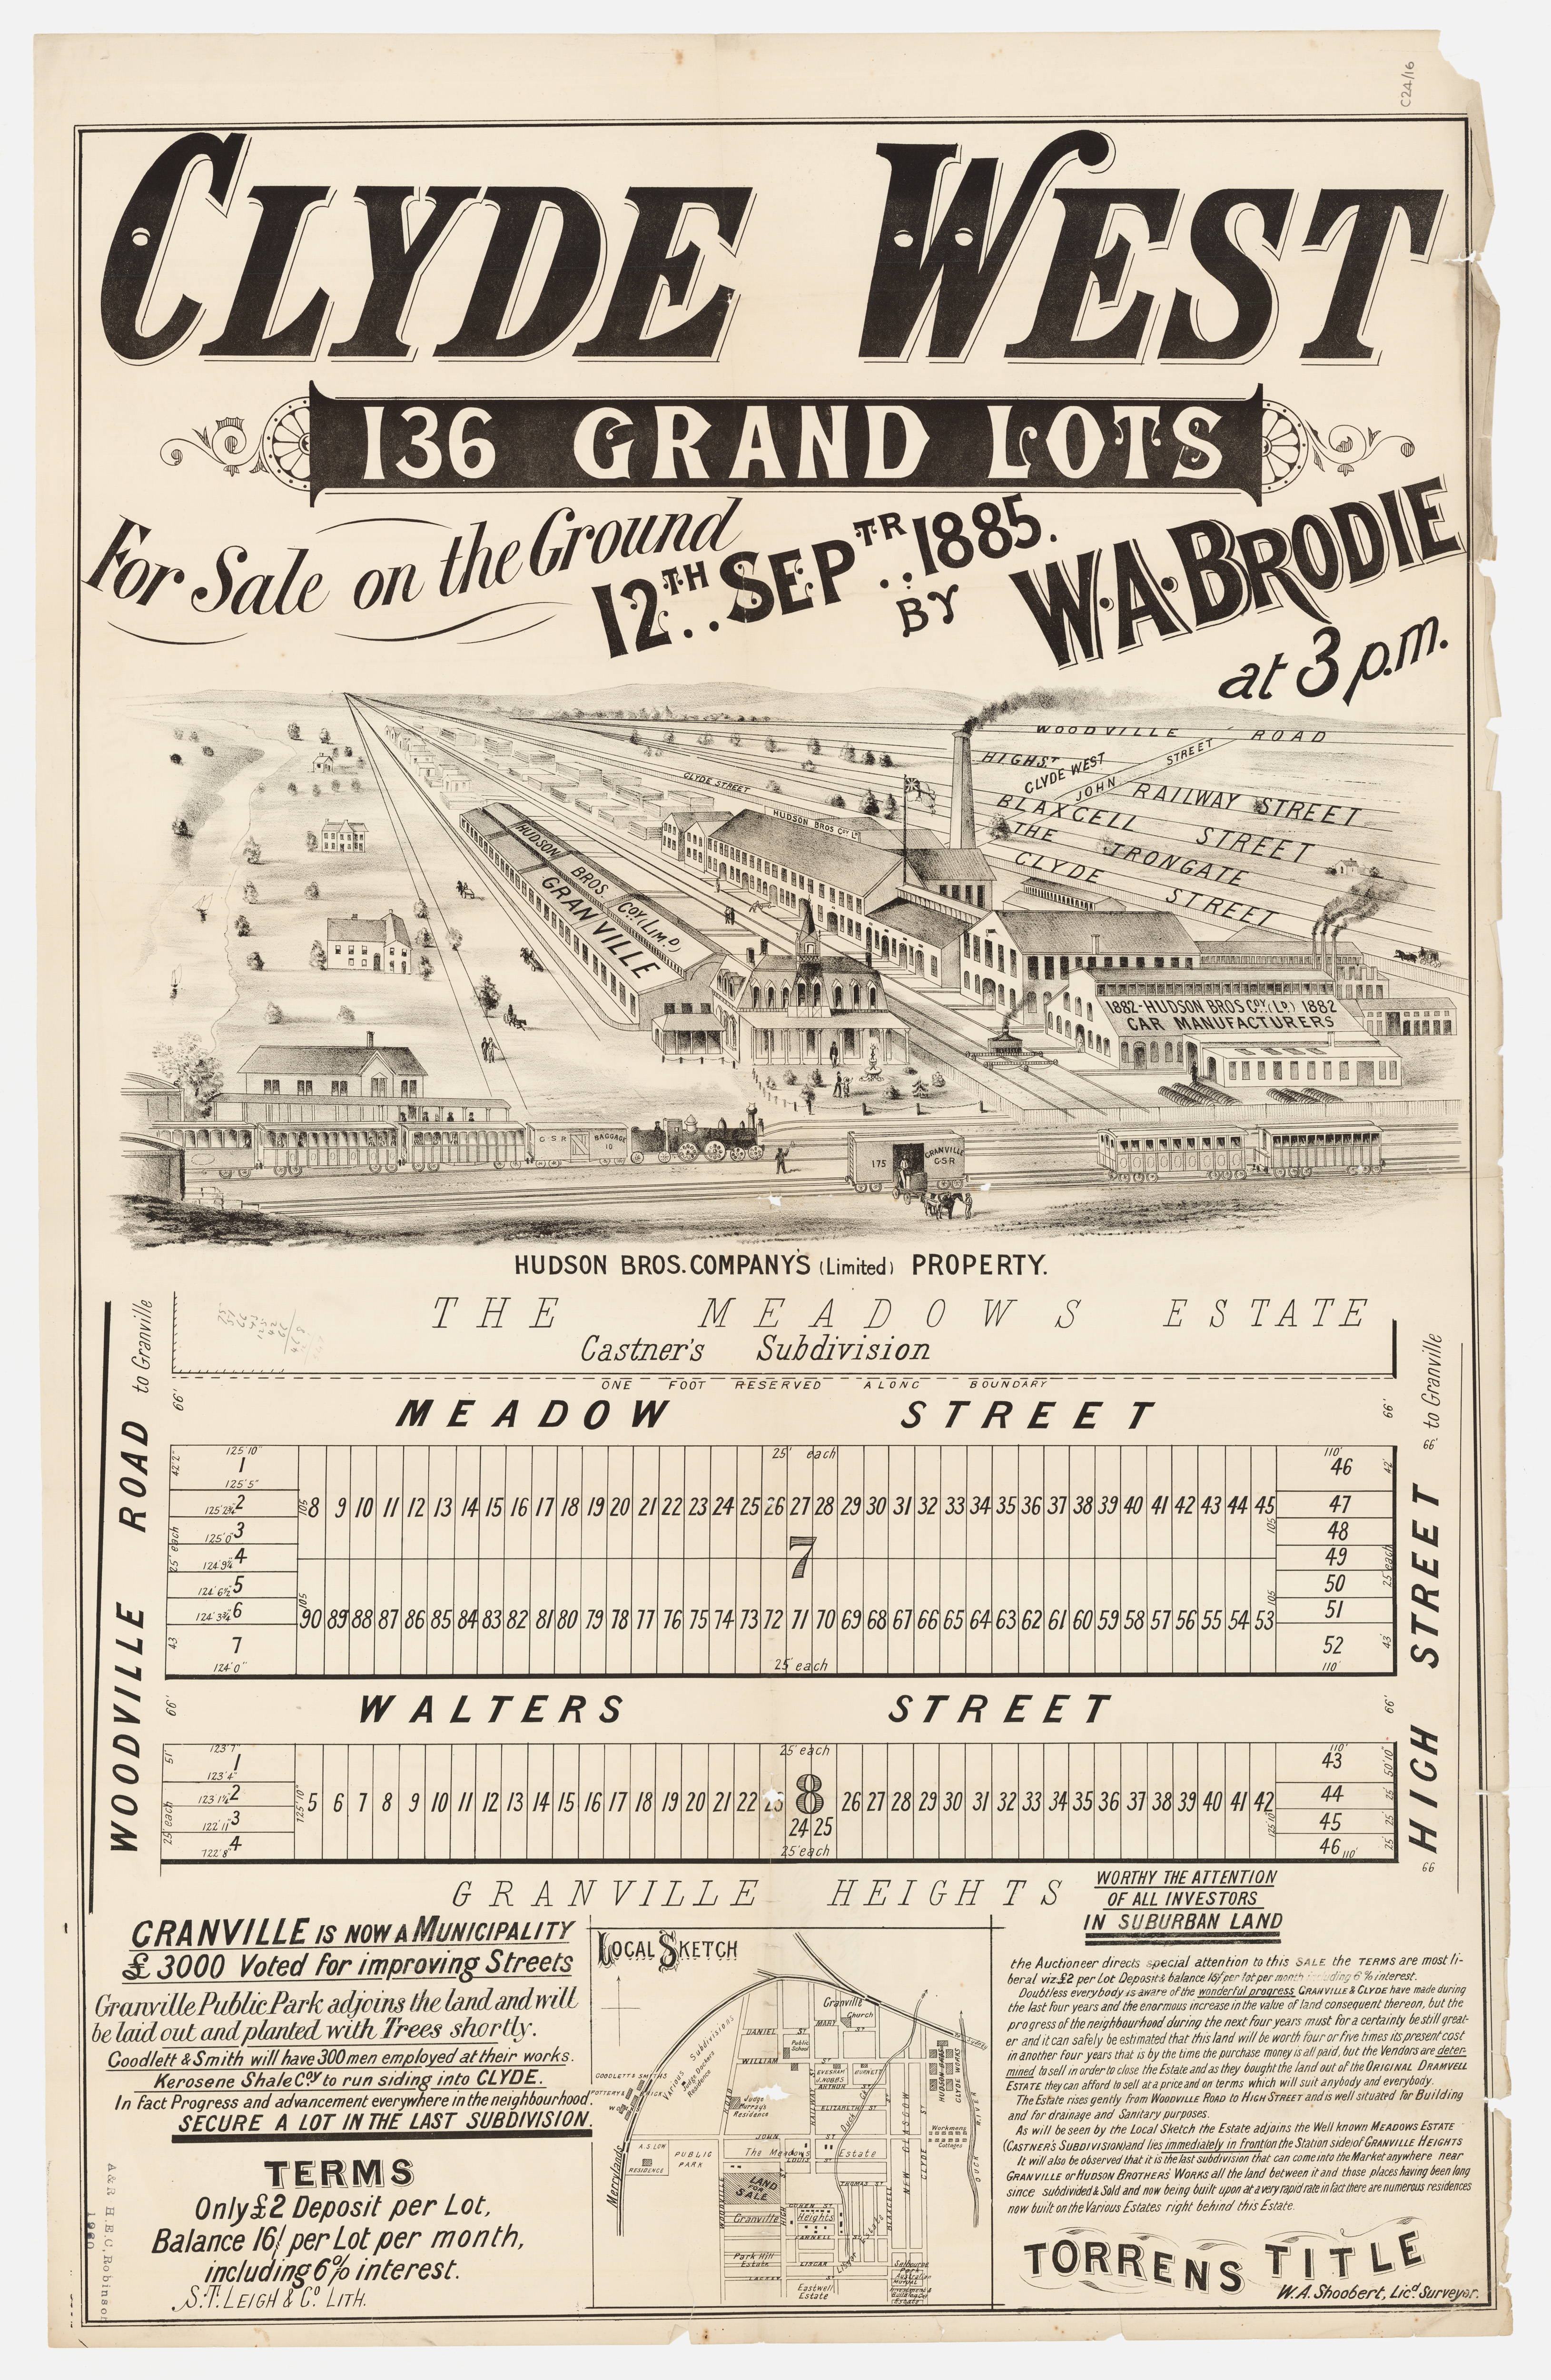 Subdivision Plan: 016 - SP/C24/16 - Clyde West 136 Grand Lots - Woodville Rd, Walters St, High St, Meadow St, 1885